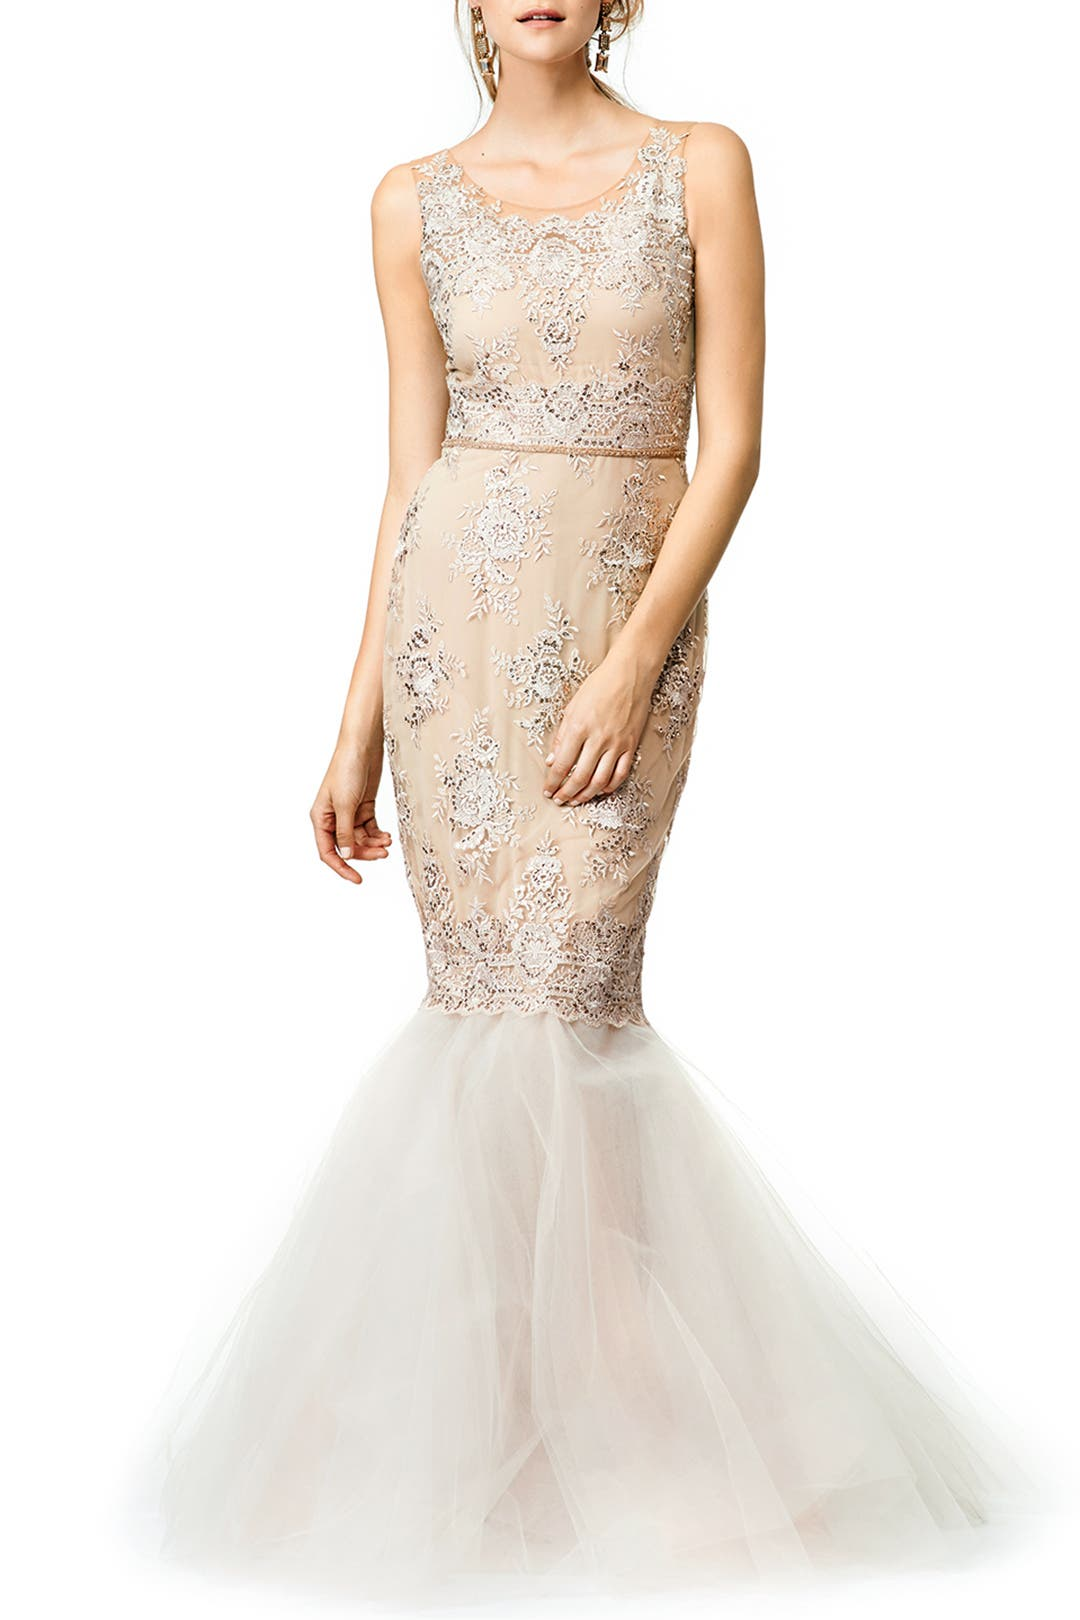 Only Rose Gown By Marchesa Notte For $75